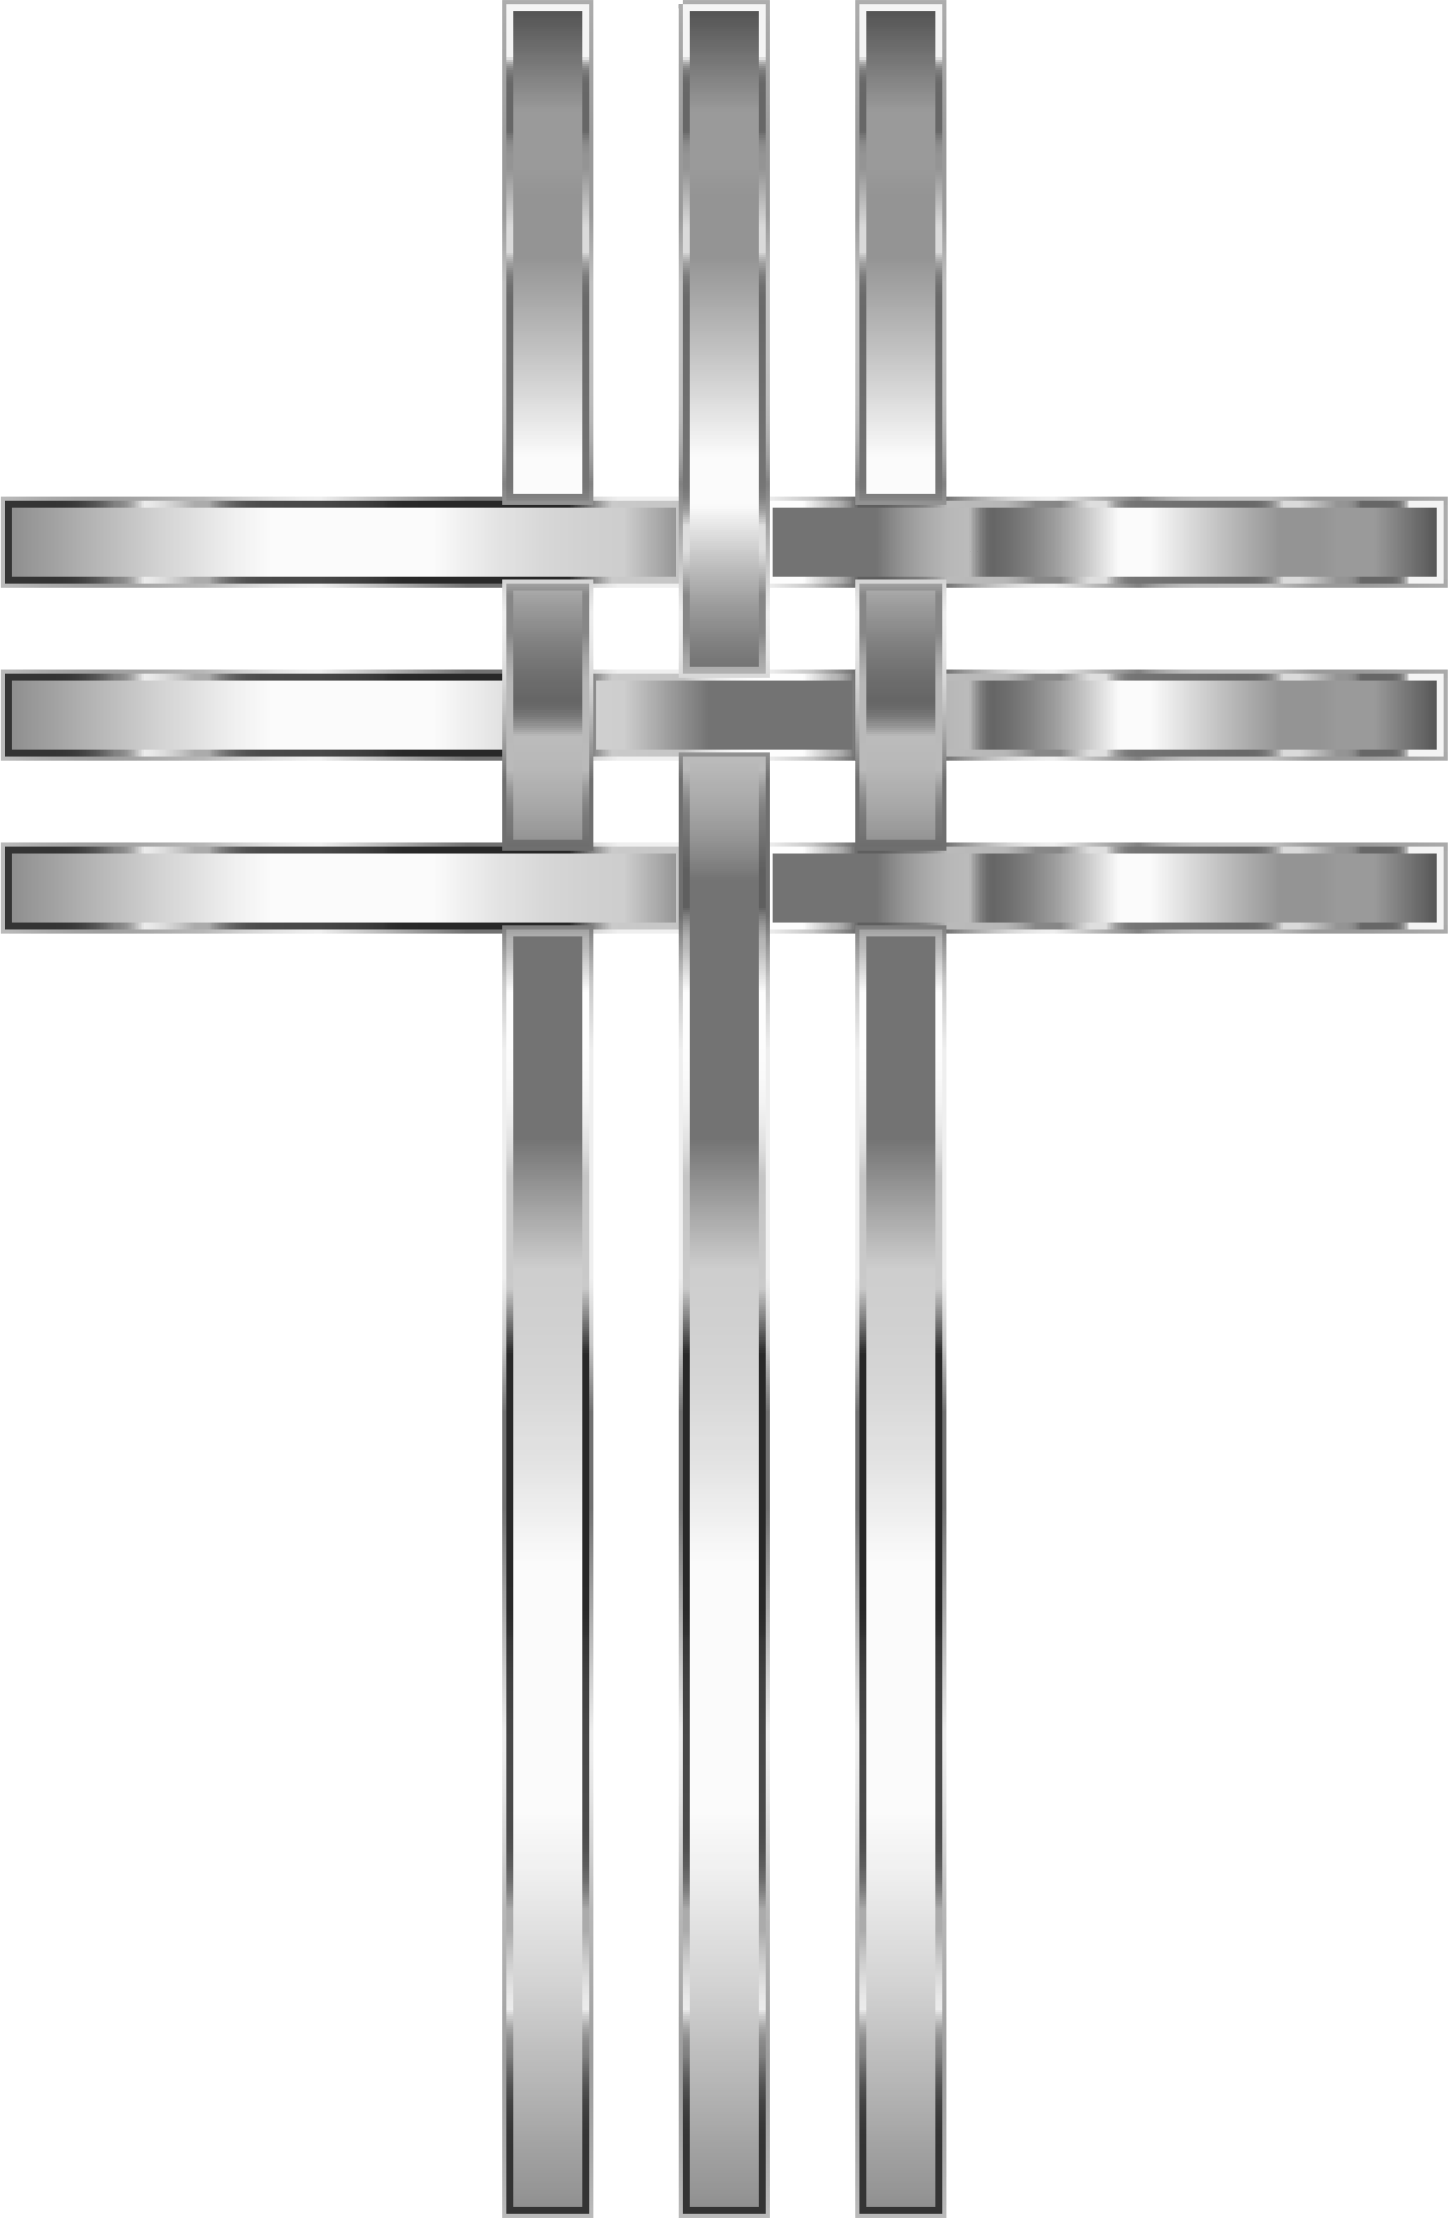 Weight clipart metal. Interlocked stylized stainless steel